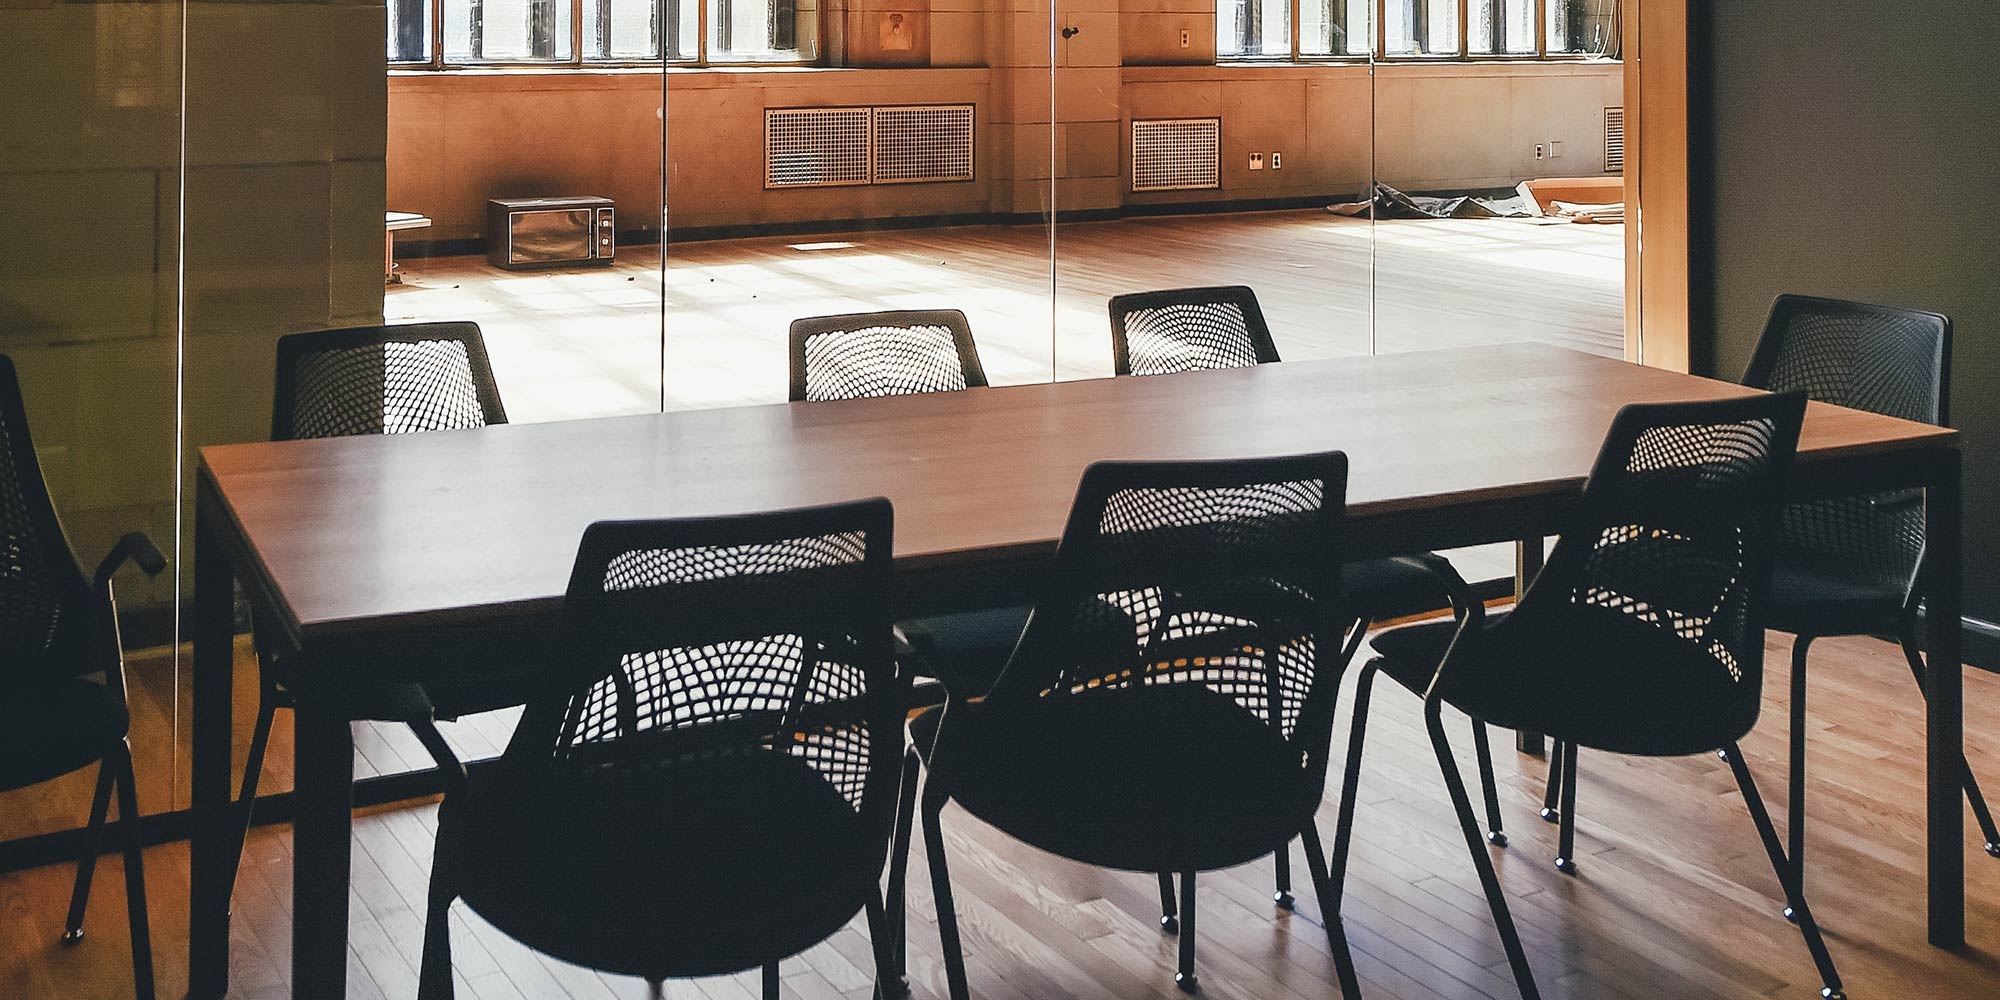 A meeting room with empty chairs around a table.